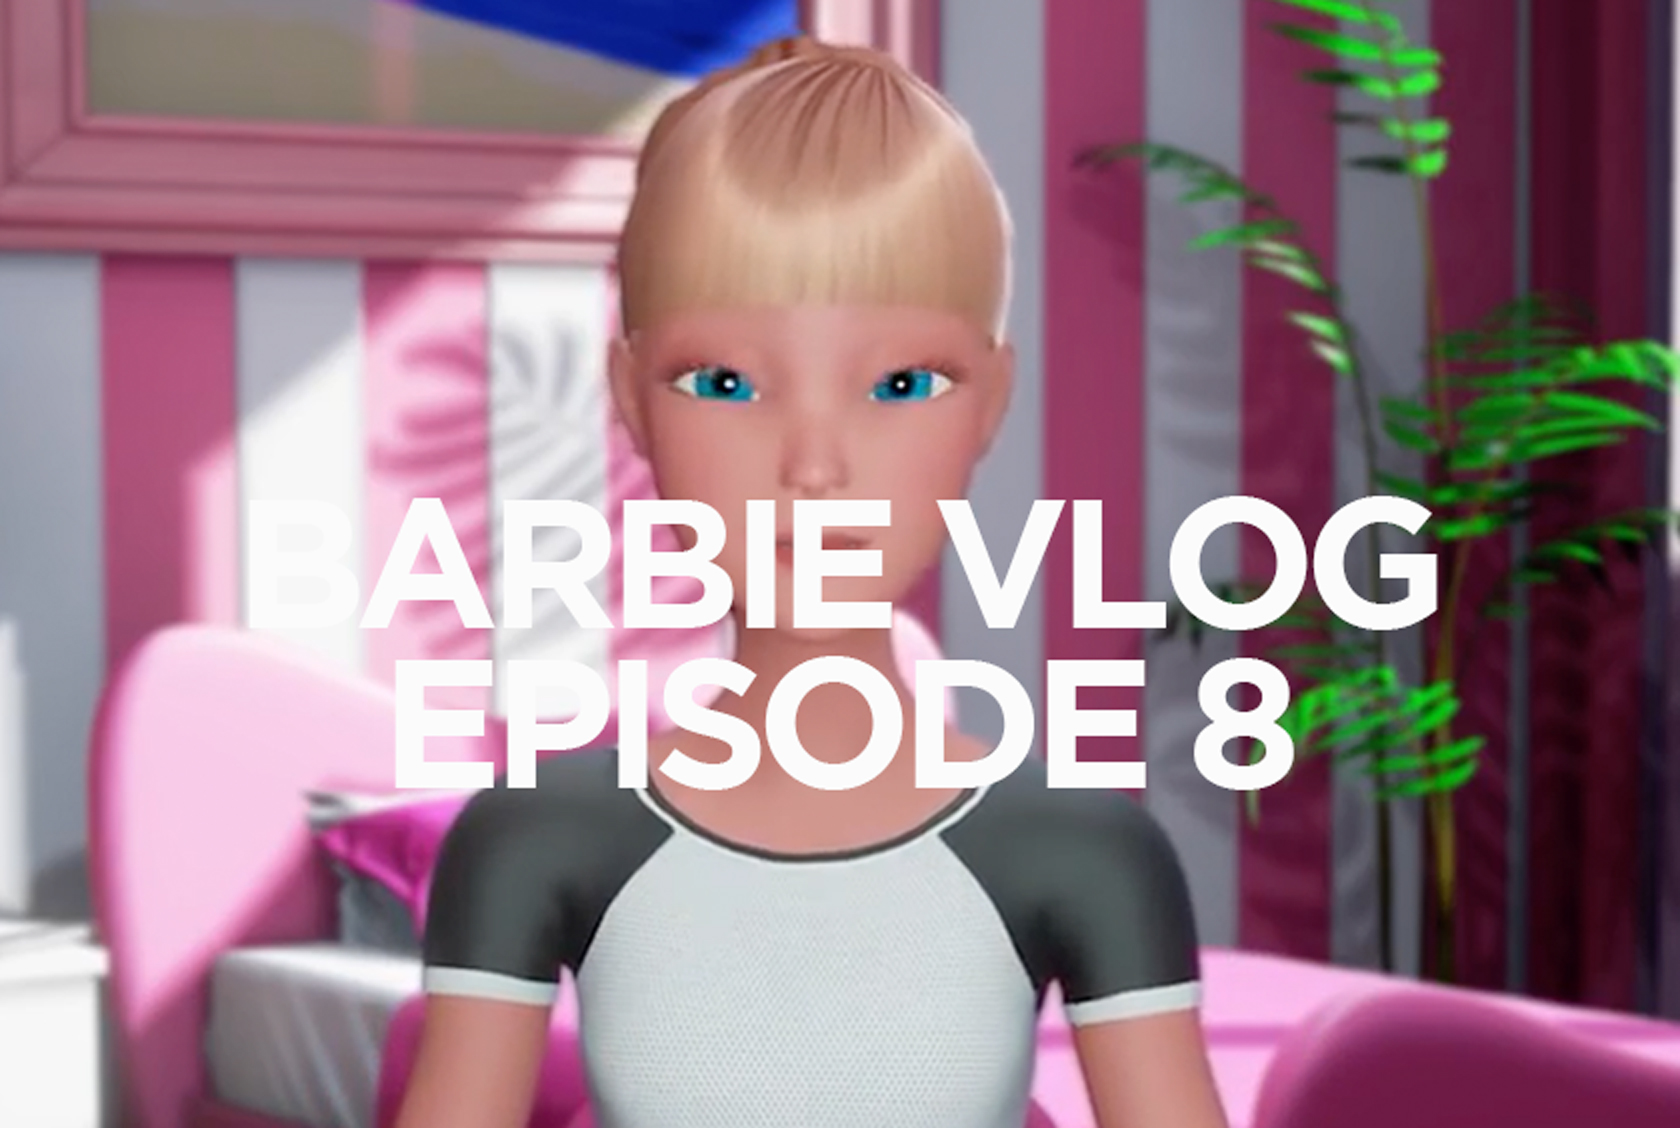 BARBIE VLOG EPISODE 08